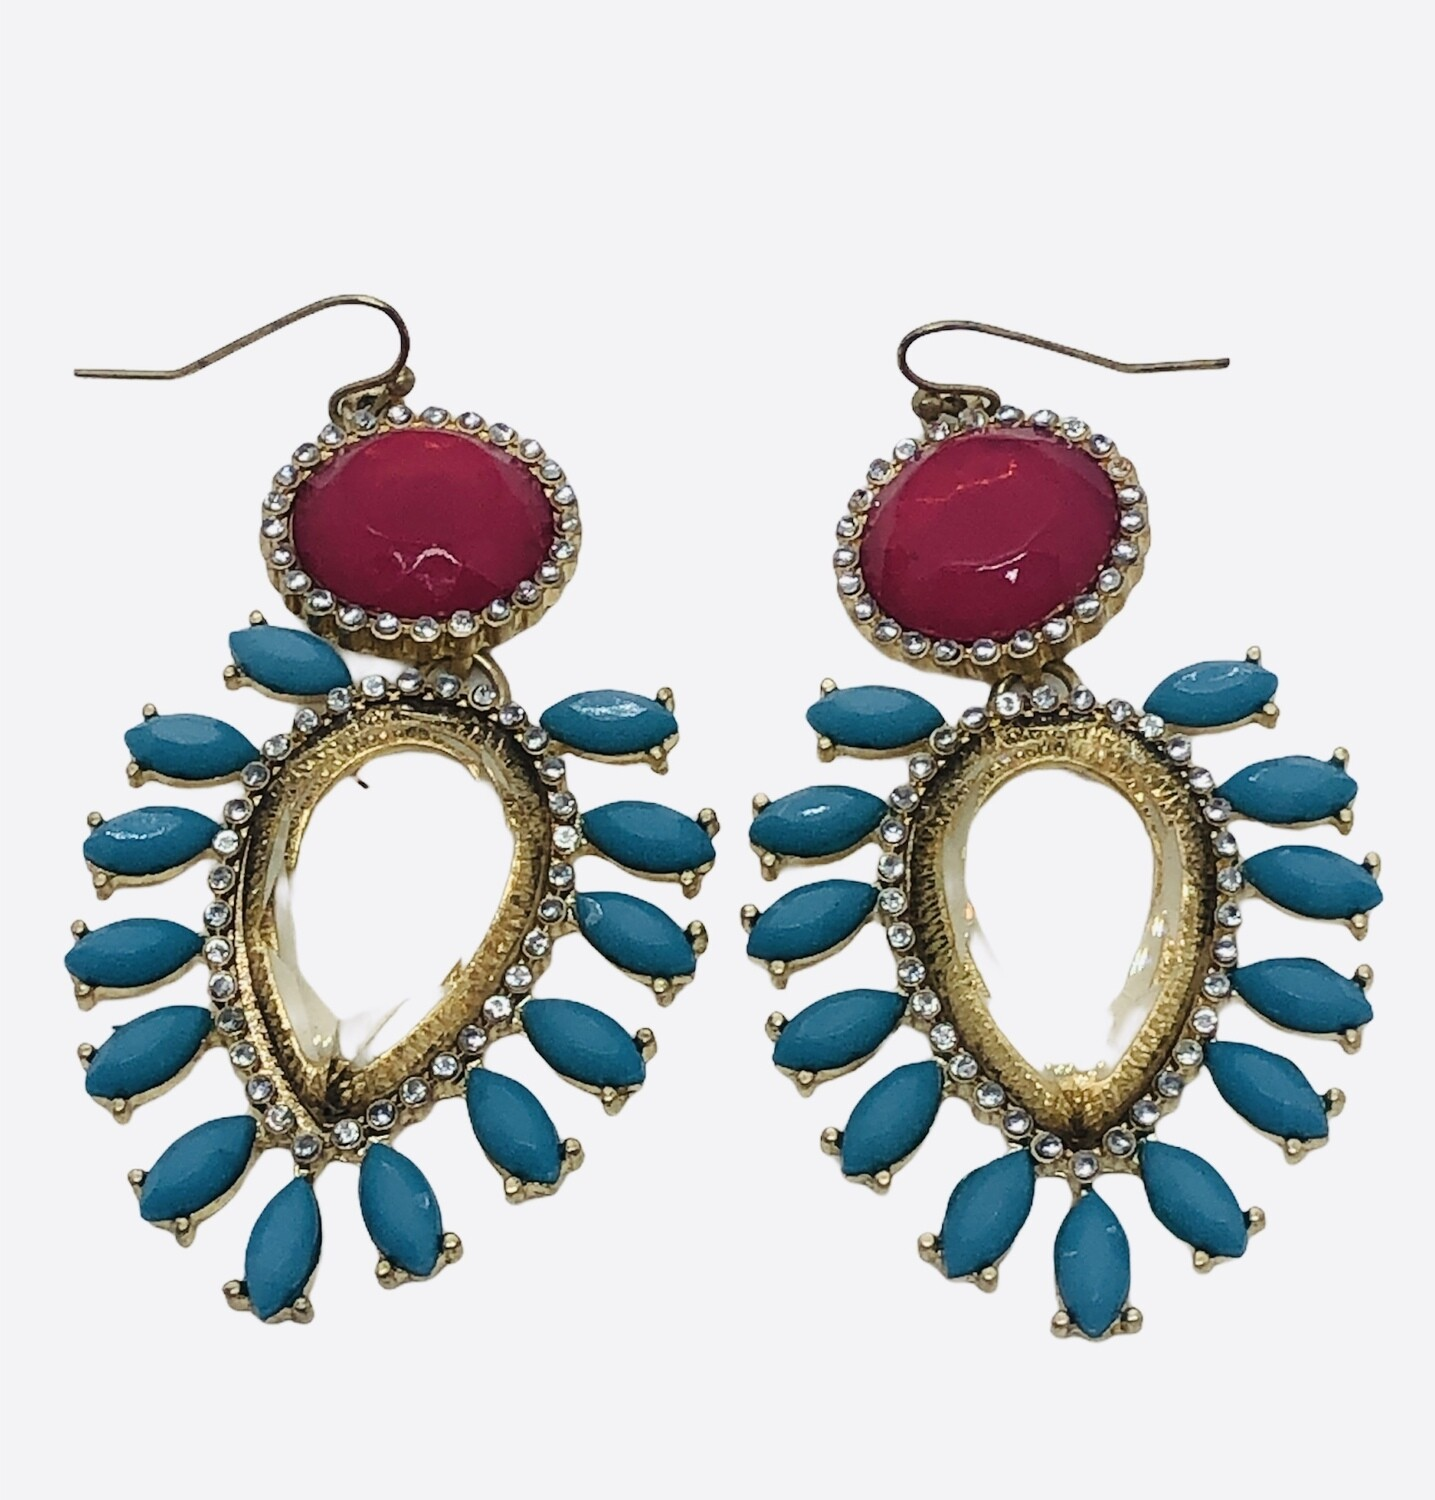 Turquoise and Rhinestone Gold Drop Earrings